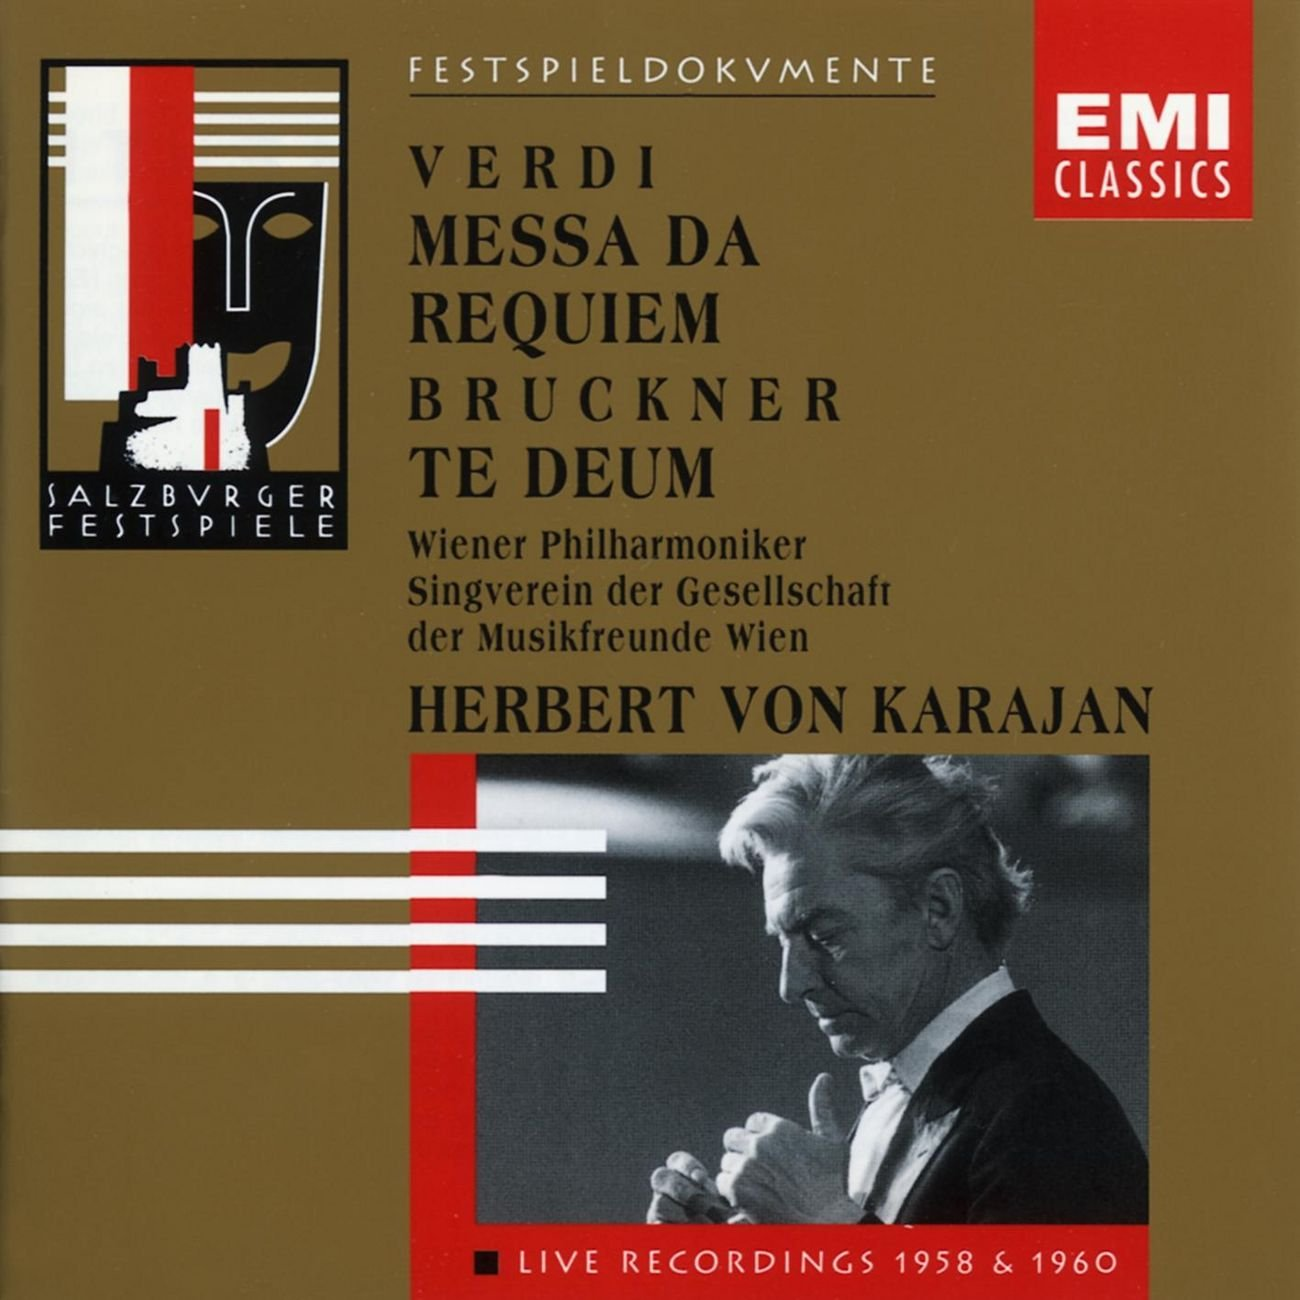 Verdi: Messa da Requiem / Bruckner: Te Deum (1958/1960) by Angel Records / EMI Classics